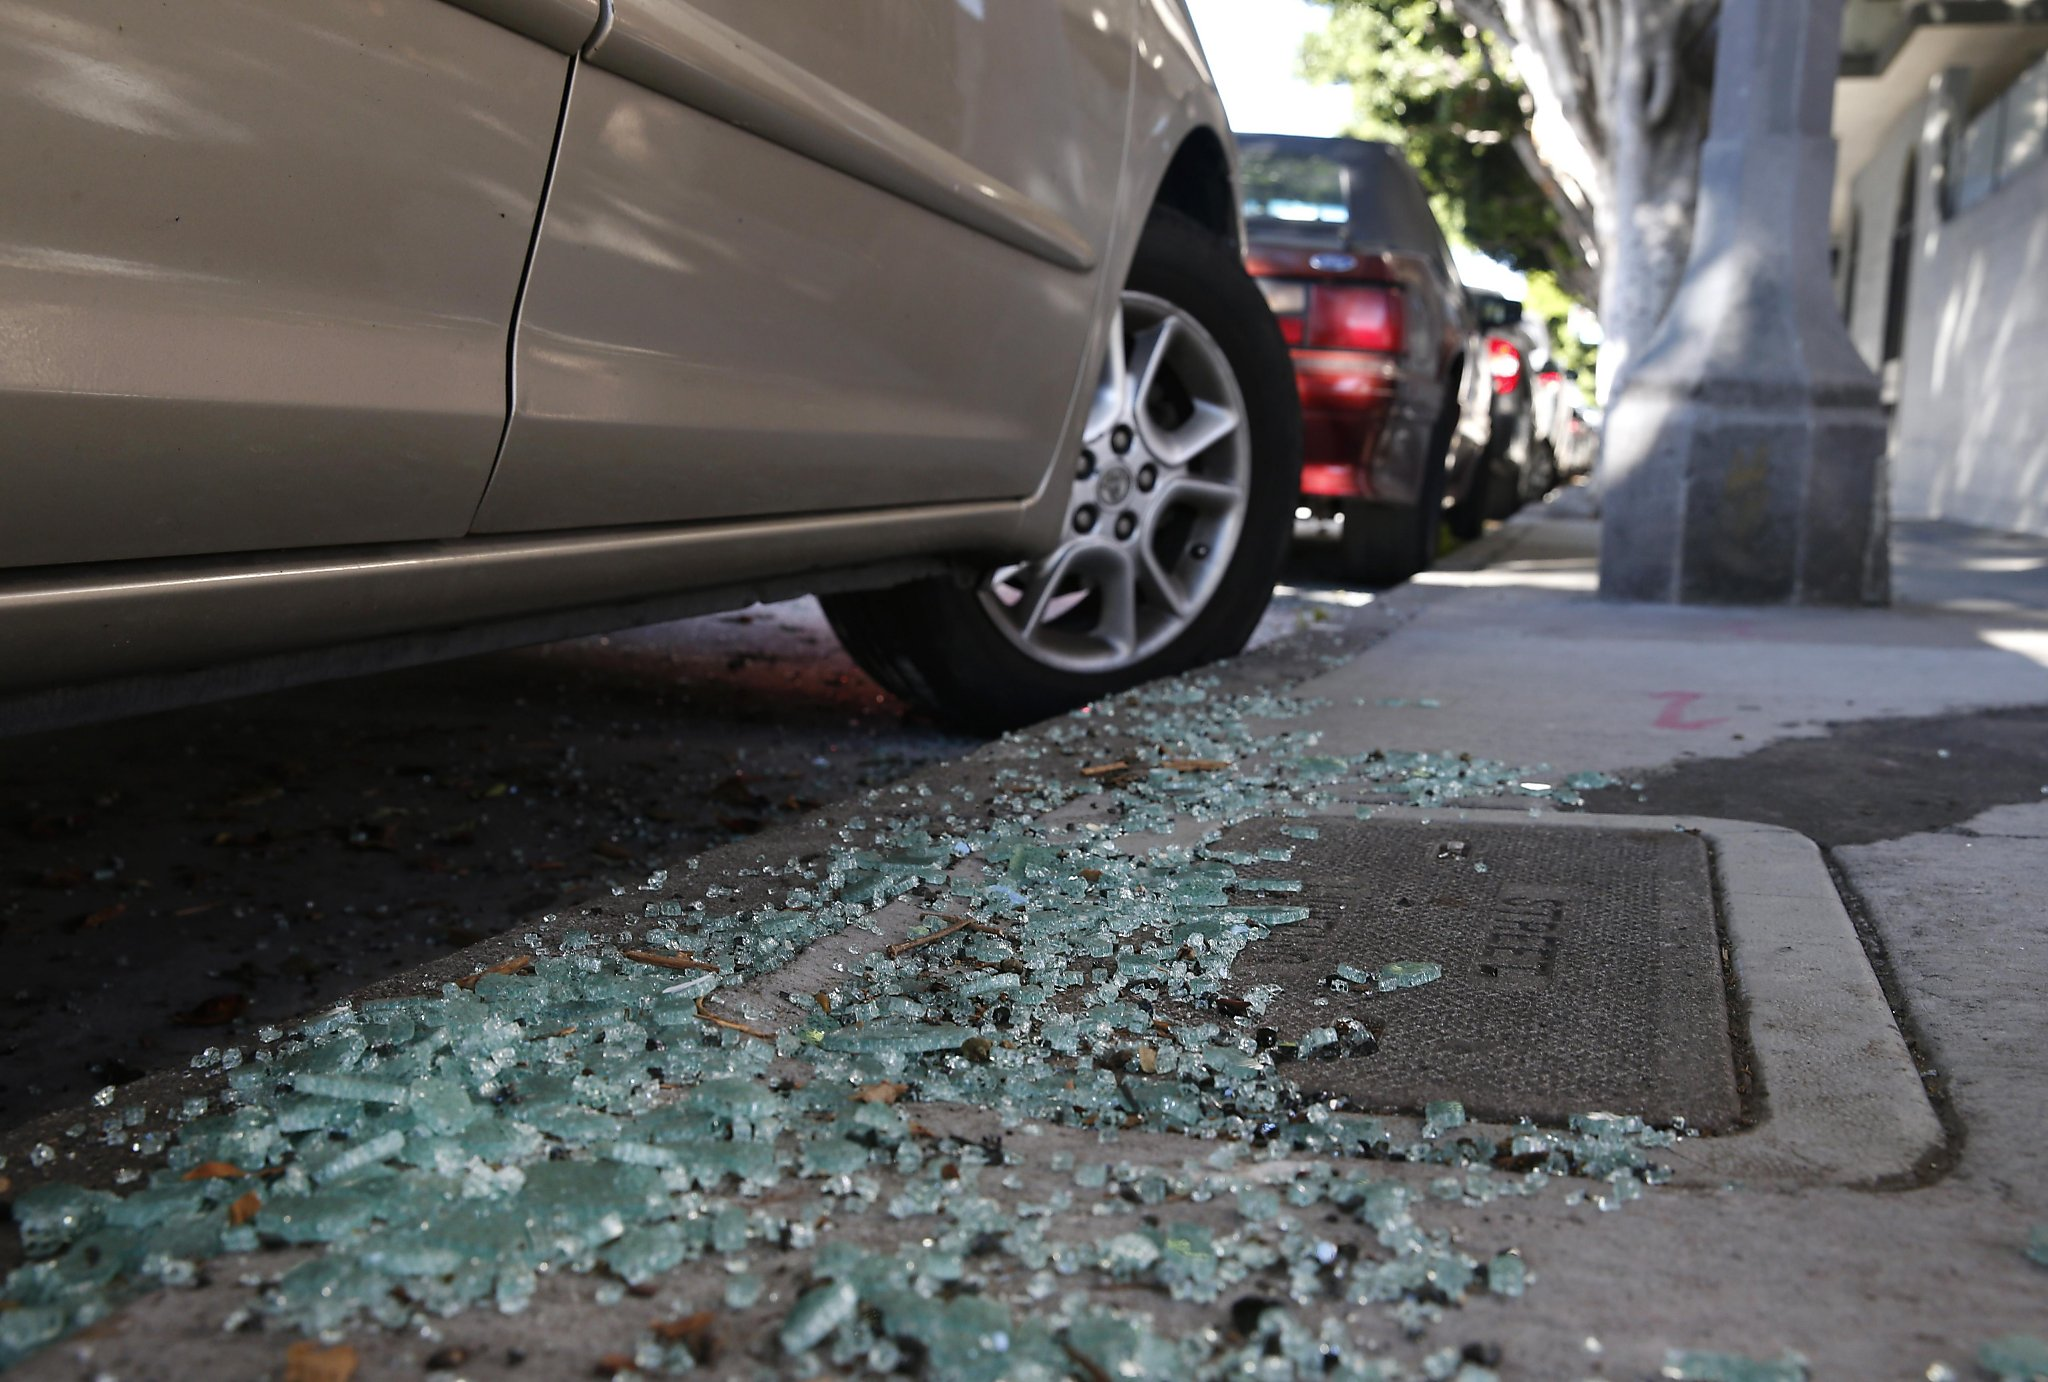 San Ramon Car Glass Smashed - Break-ins Change Auto Glass